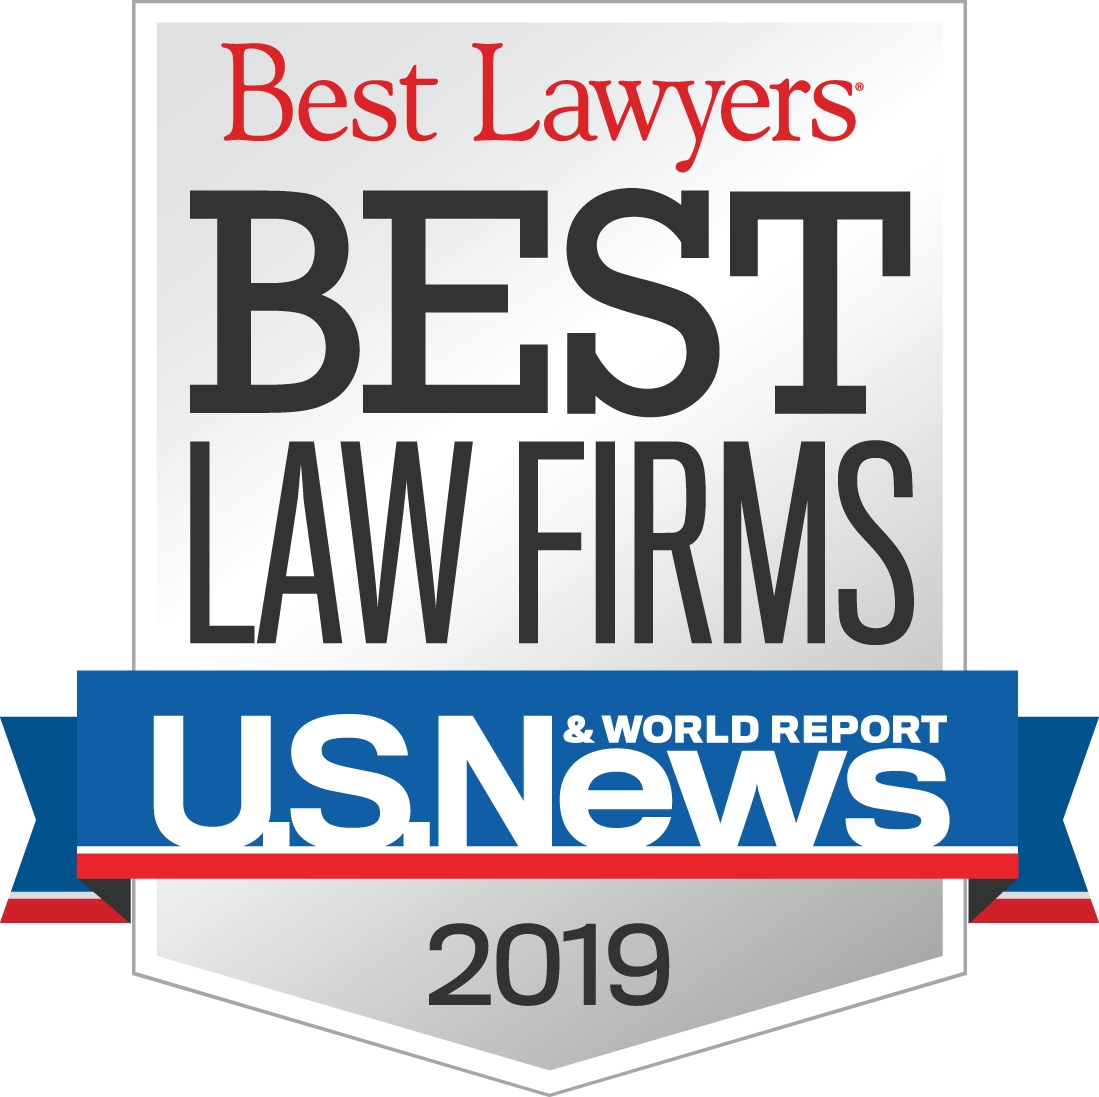 2019 Best Law Firms, U.S. News & World Report